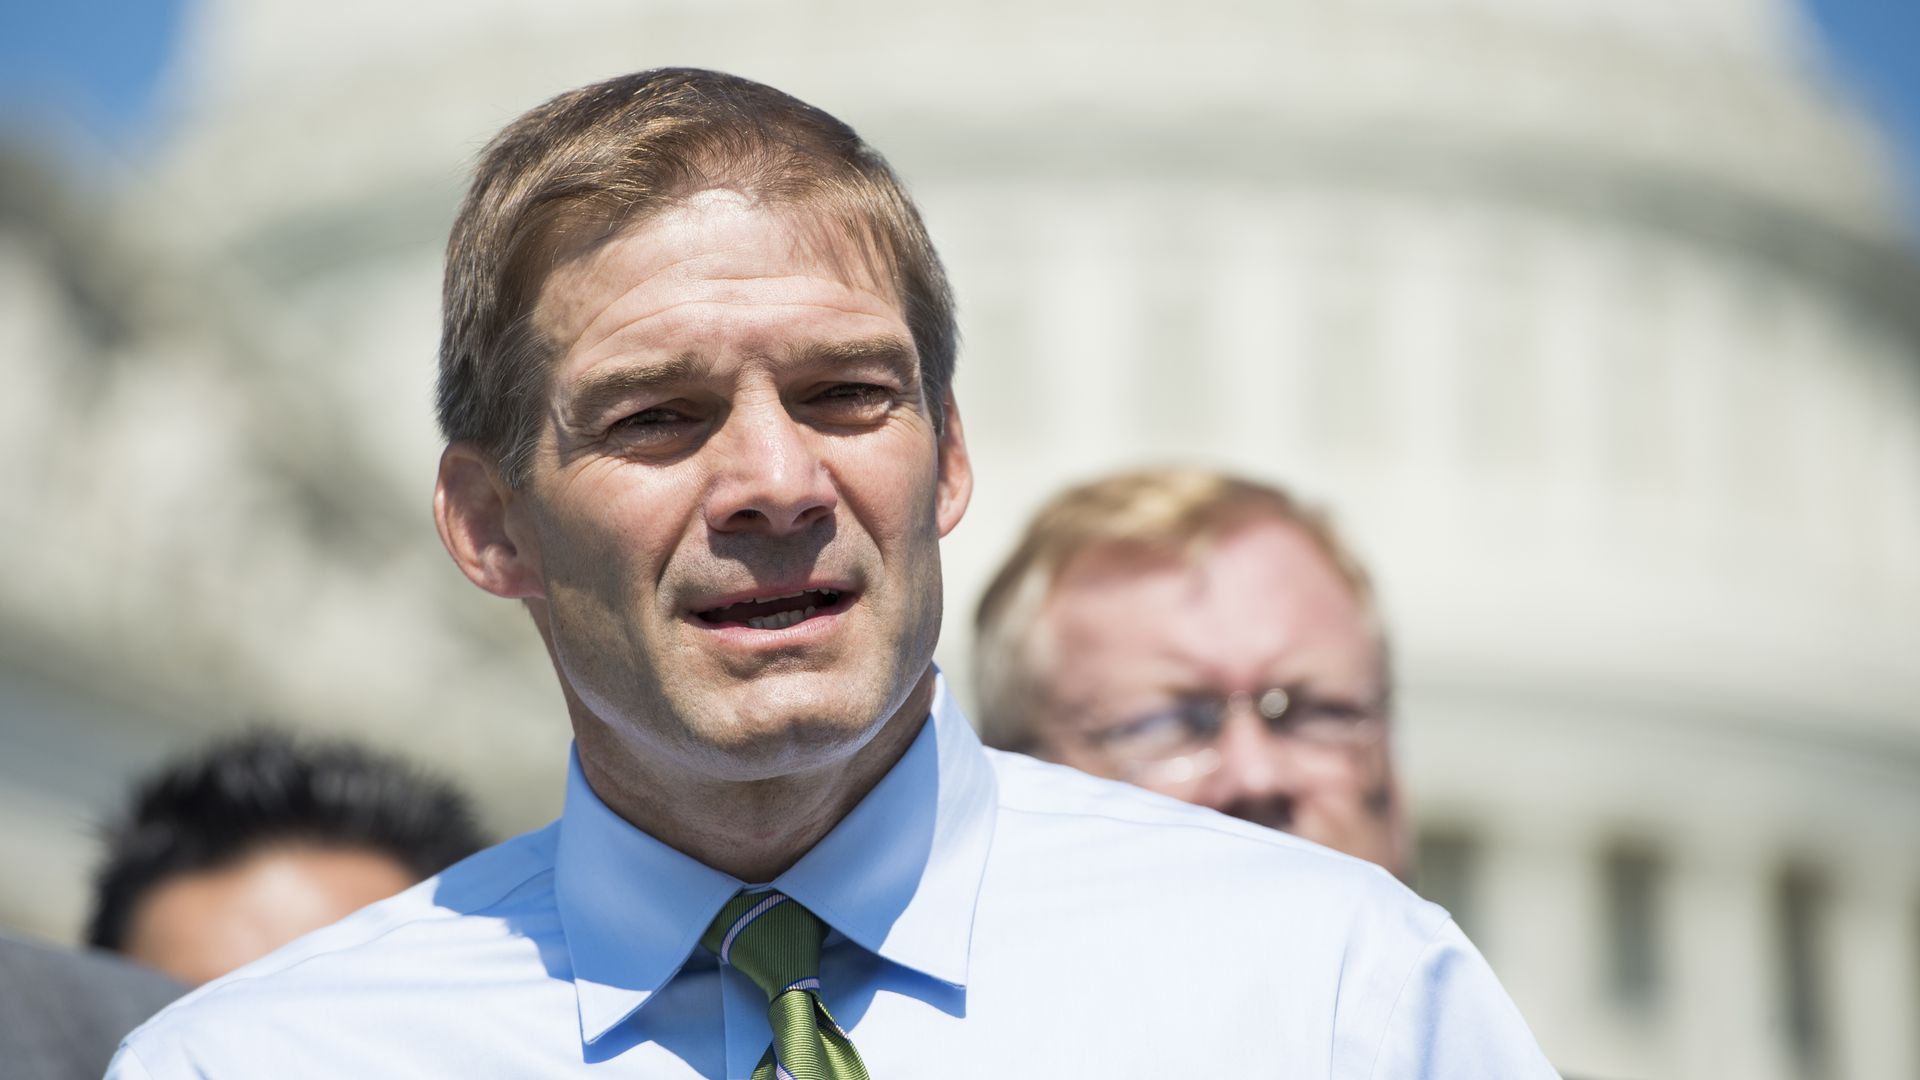 Rep. Jim Jordan speaks outside the Capitol